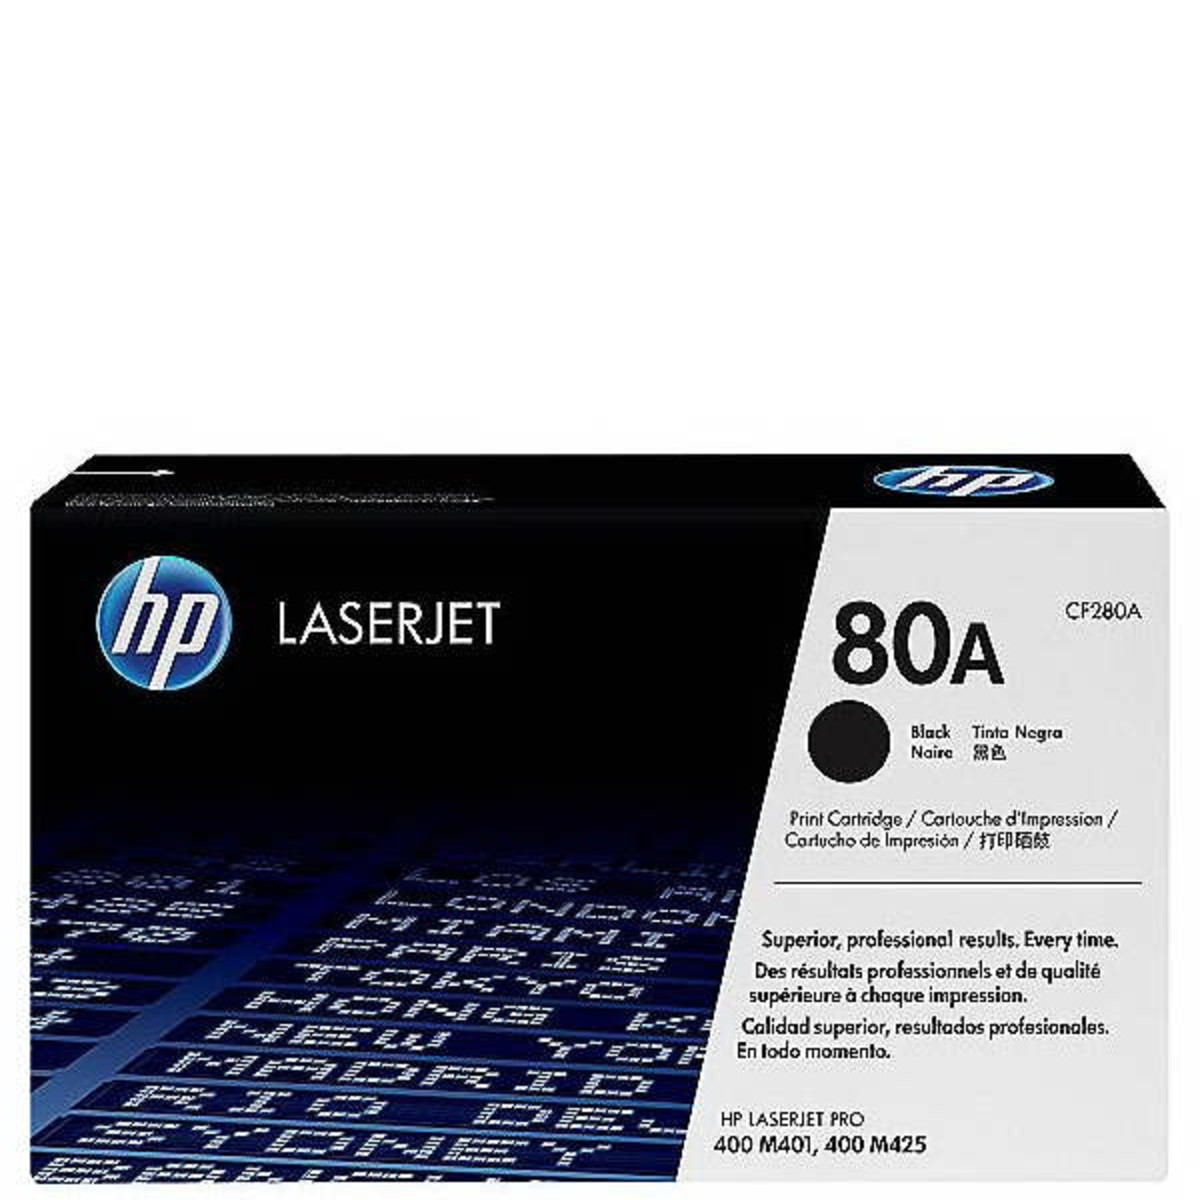 Toner Ink Tinta Catridge Hp 950 Xl Black Original Laserjet Print Cartridge 80a